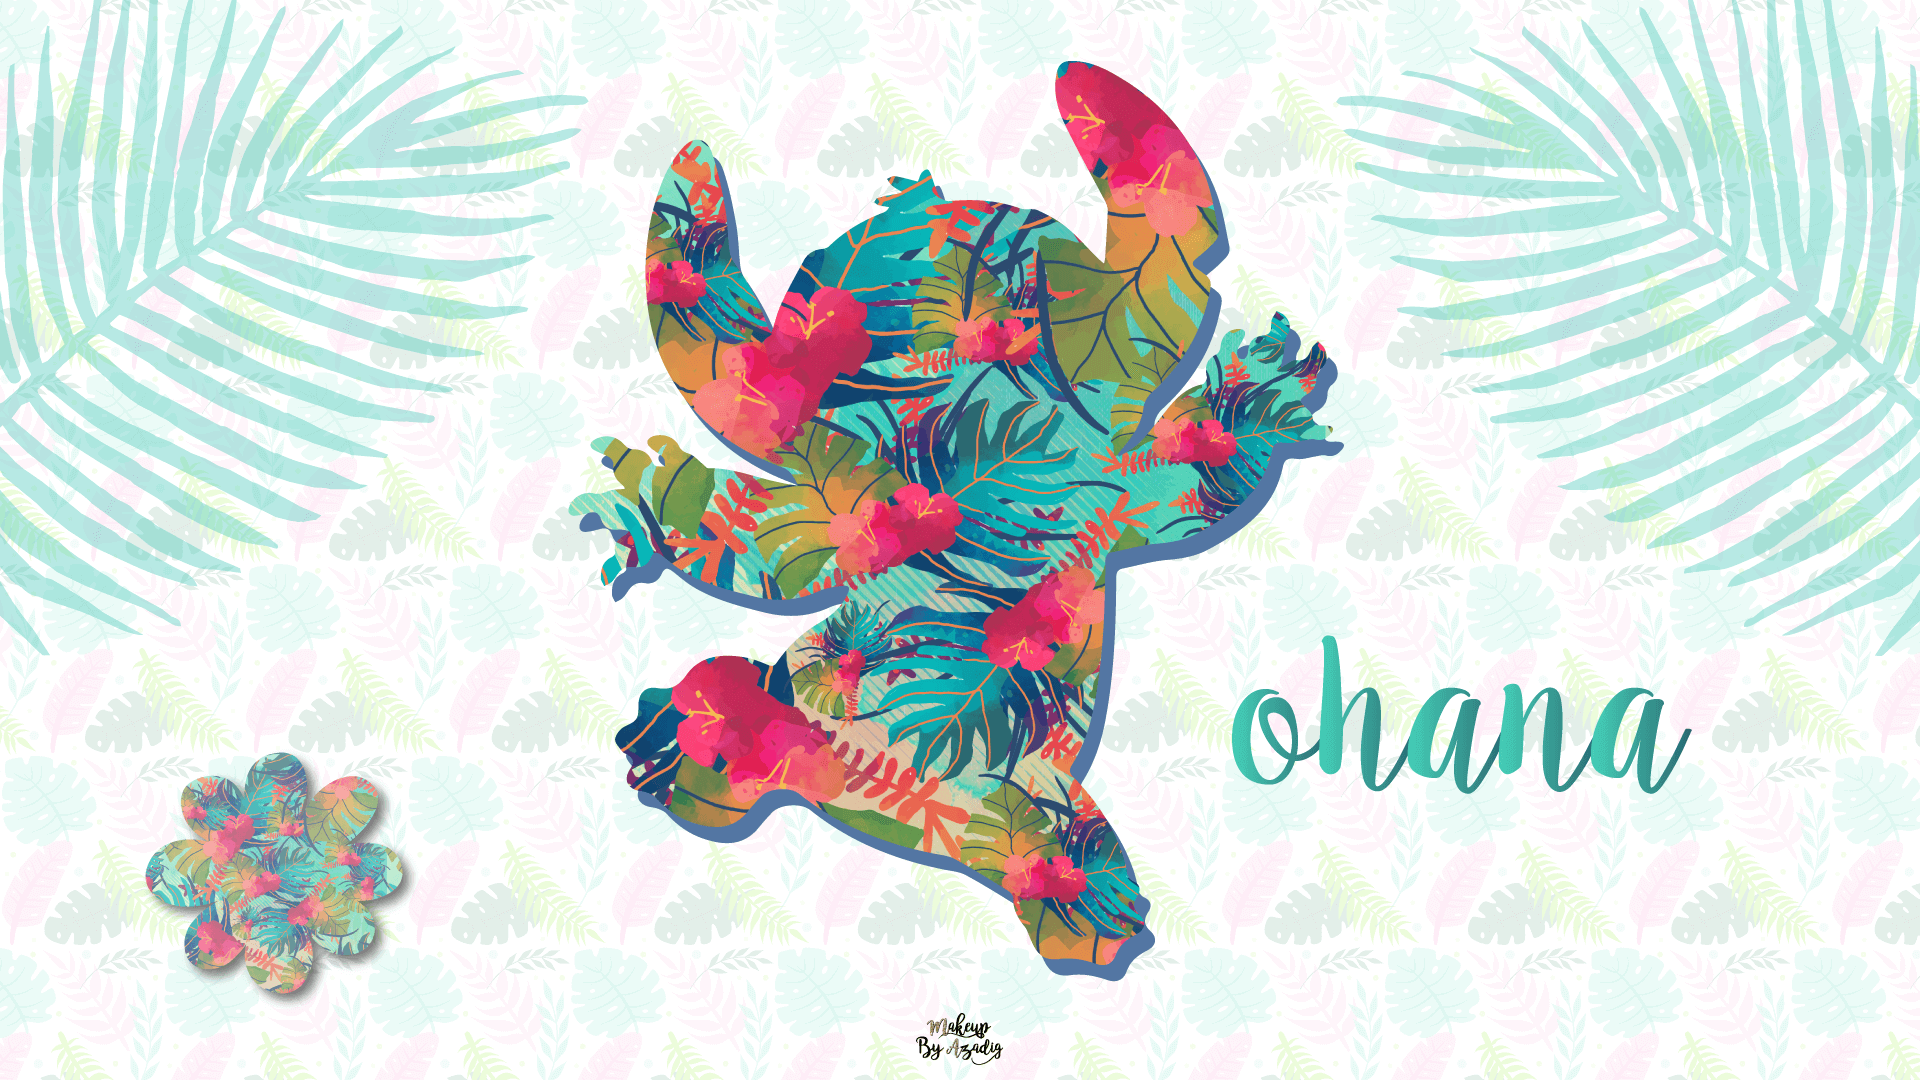 fond-decran-wallpaper-stitch-hawai-disney-ordinateur-mac-macbook-imac-pc-makeupbyazadig-tendance